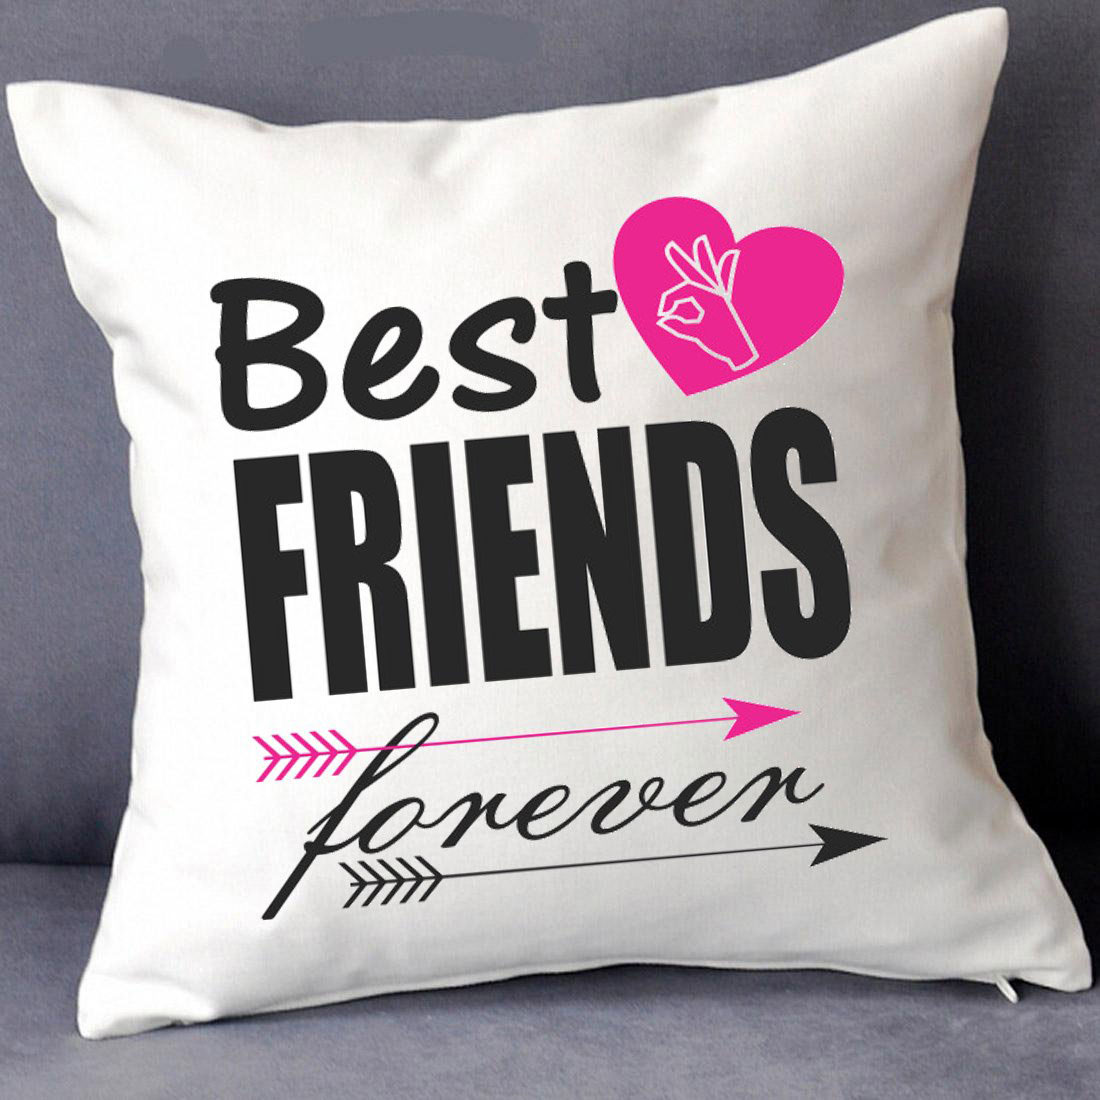 Friend Forever Images for profile